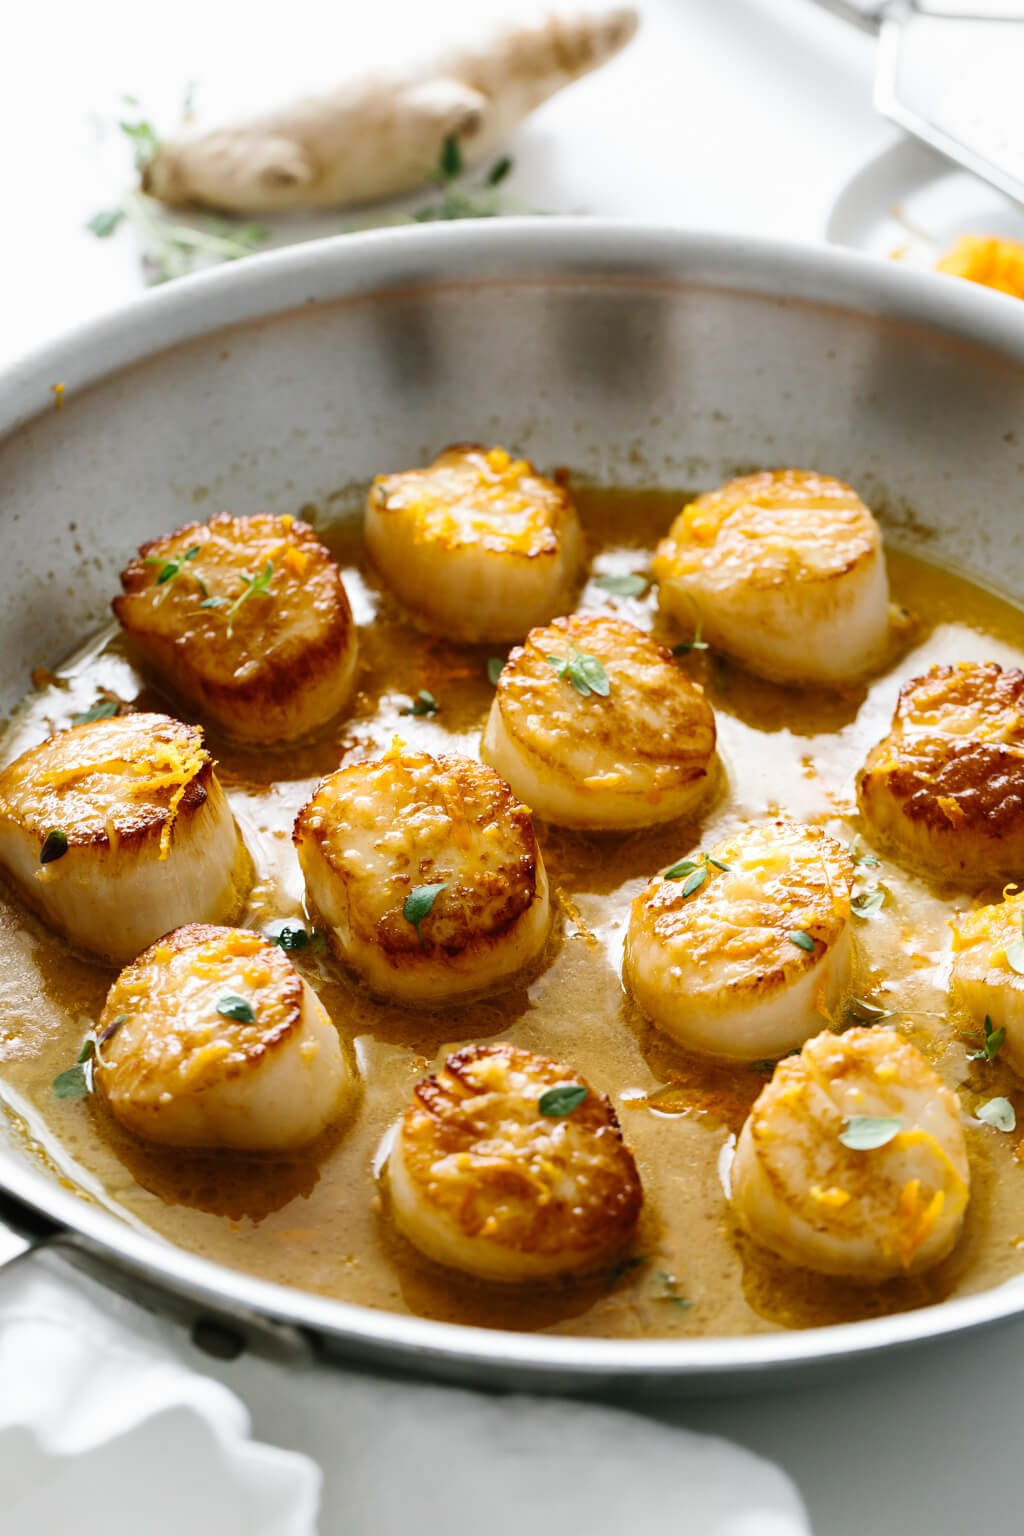 Several scallops in a pan.